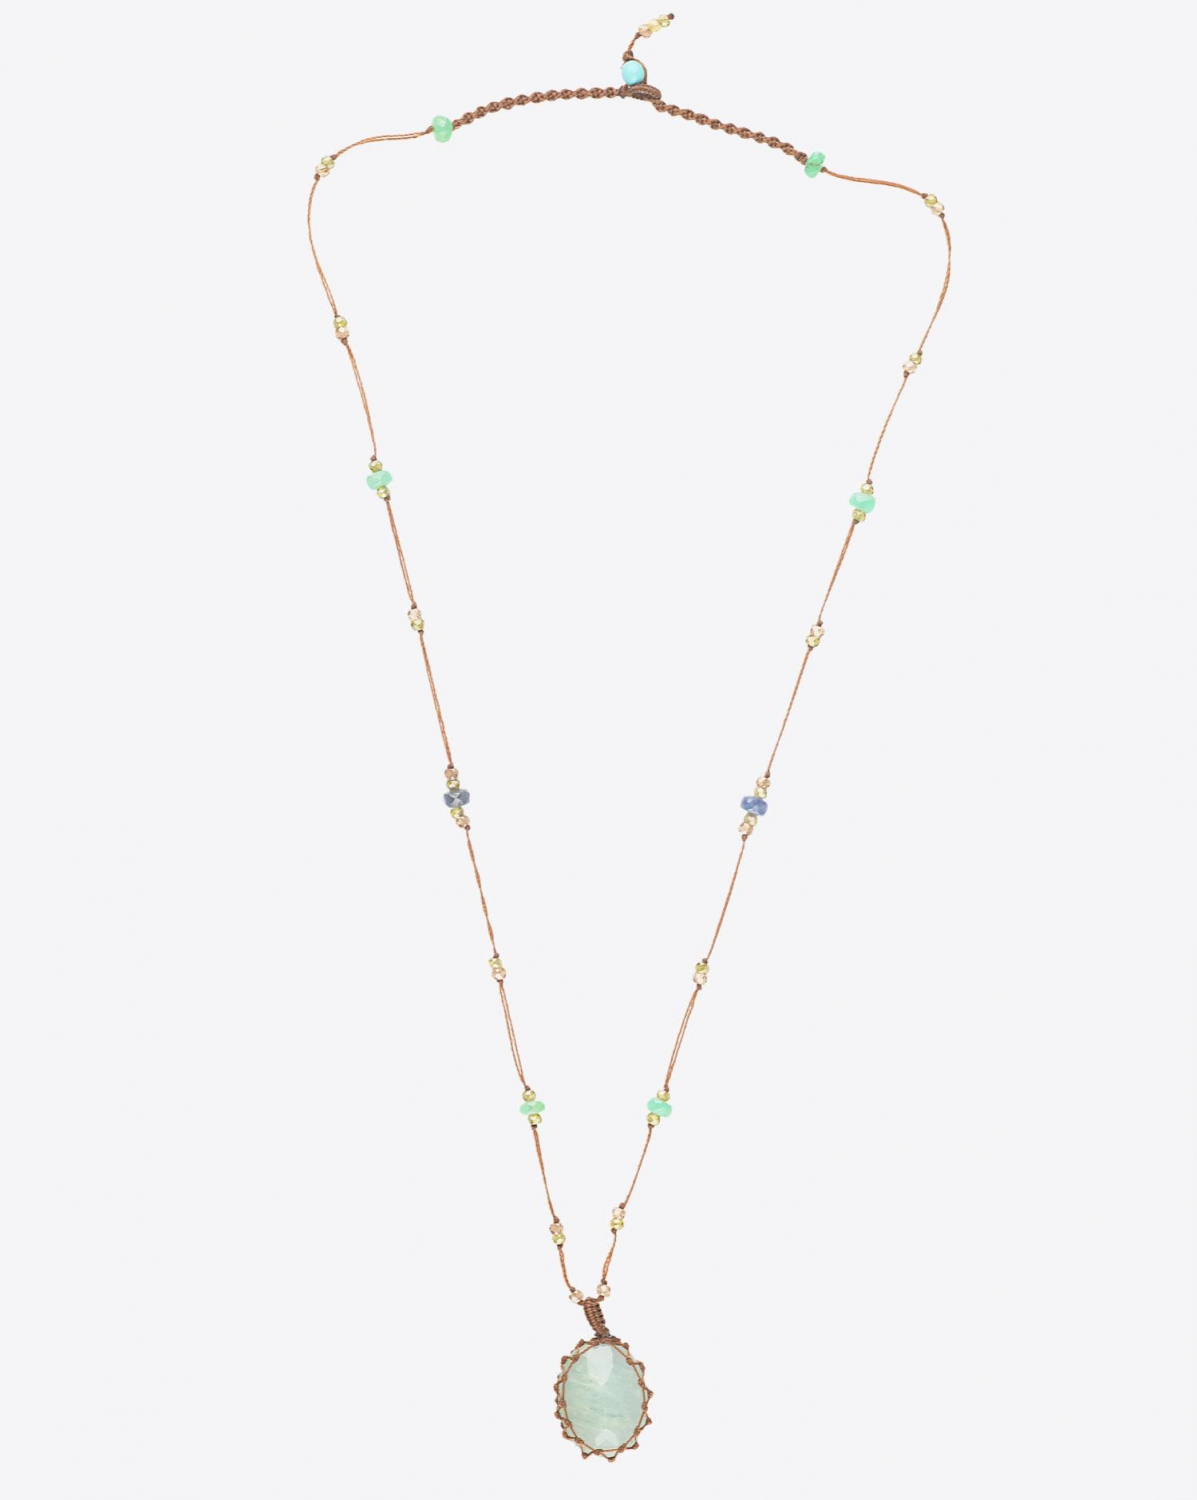 Sharing Collier Court TIBETAN Sur Cordon Tabac - Aquamarine